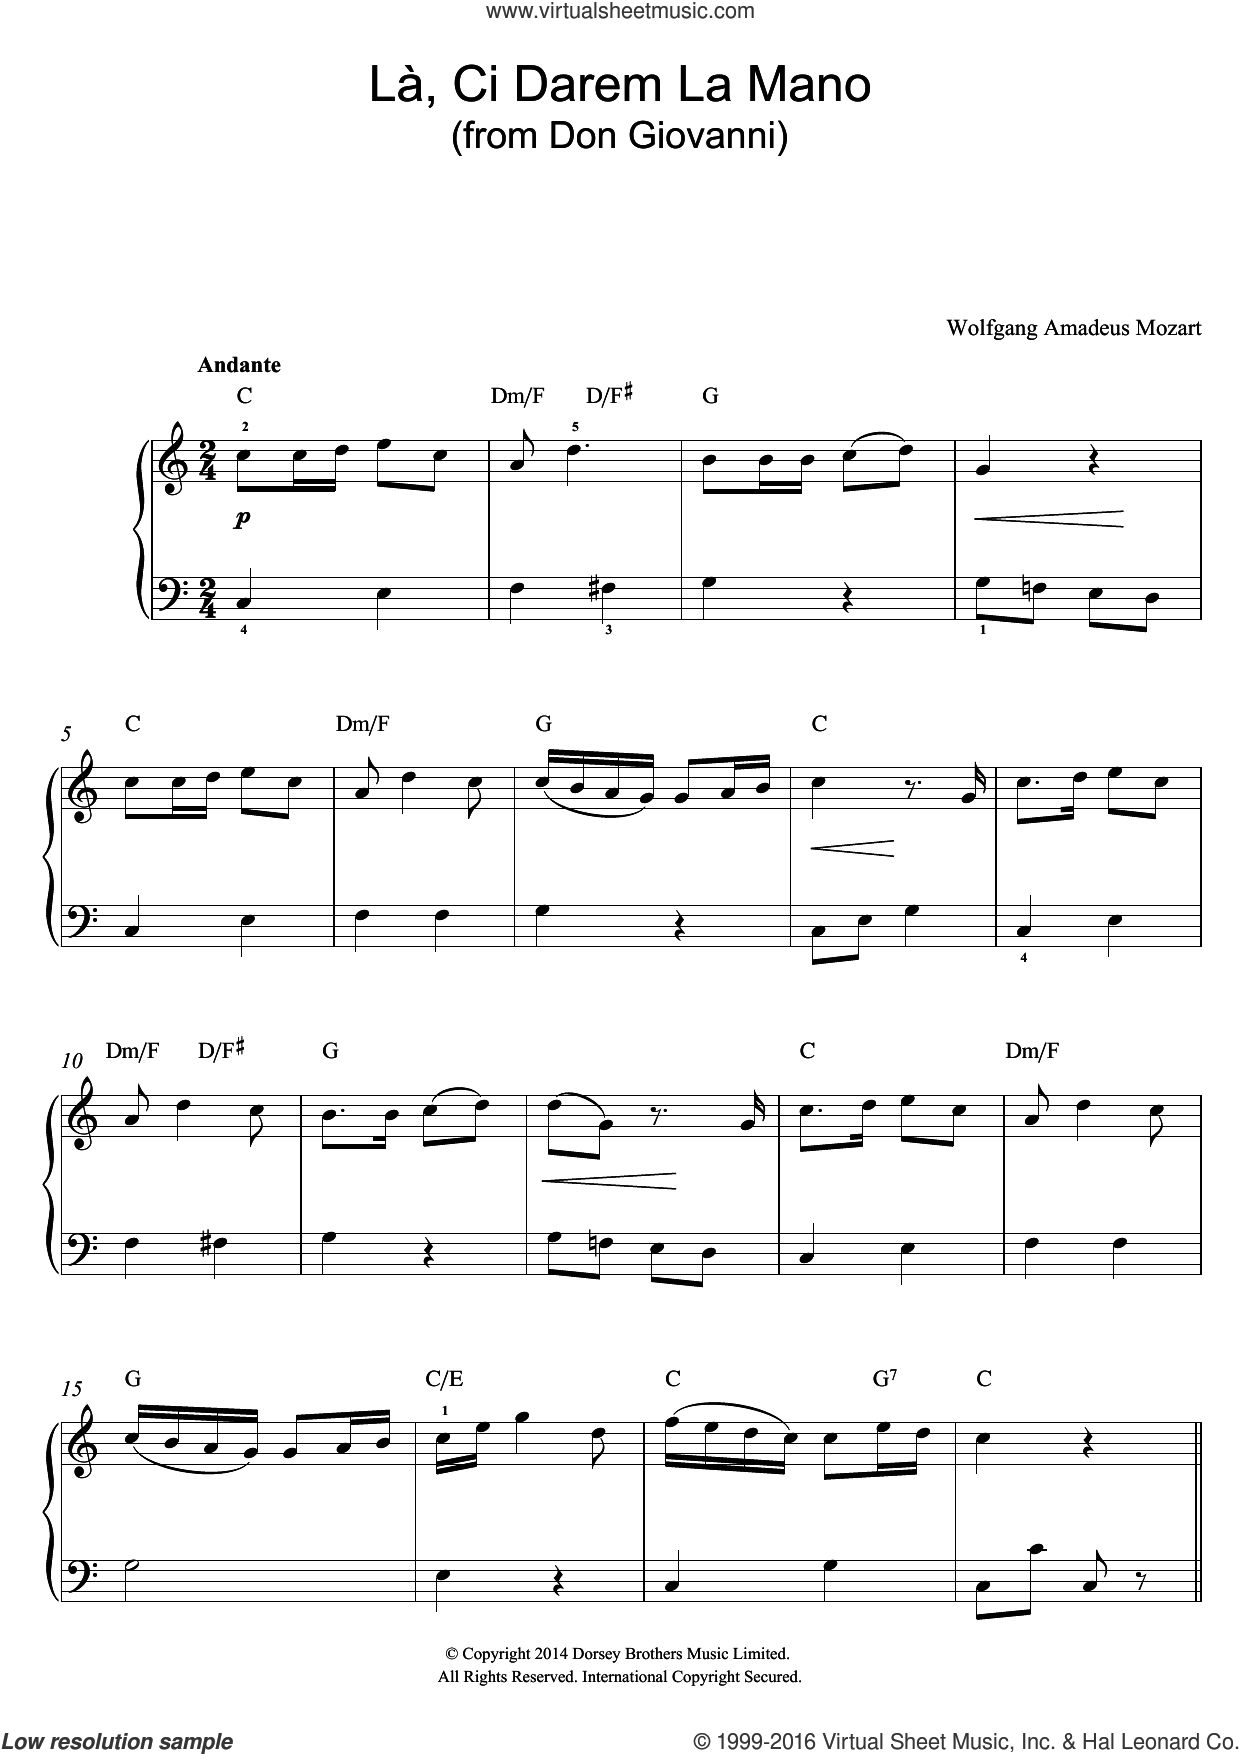 La, Ci Darem La Mano (from Don Giovanni) sheet music for piano solo (beginners) by Wolfgang Amadeus Mozart. Score Image Preview.